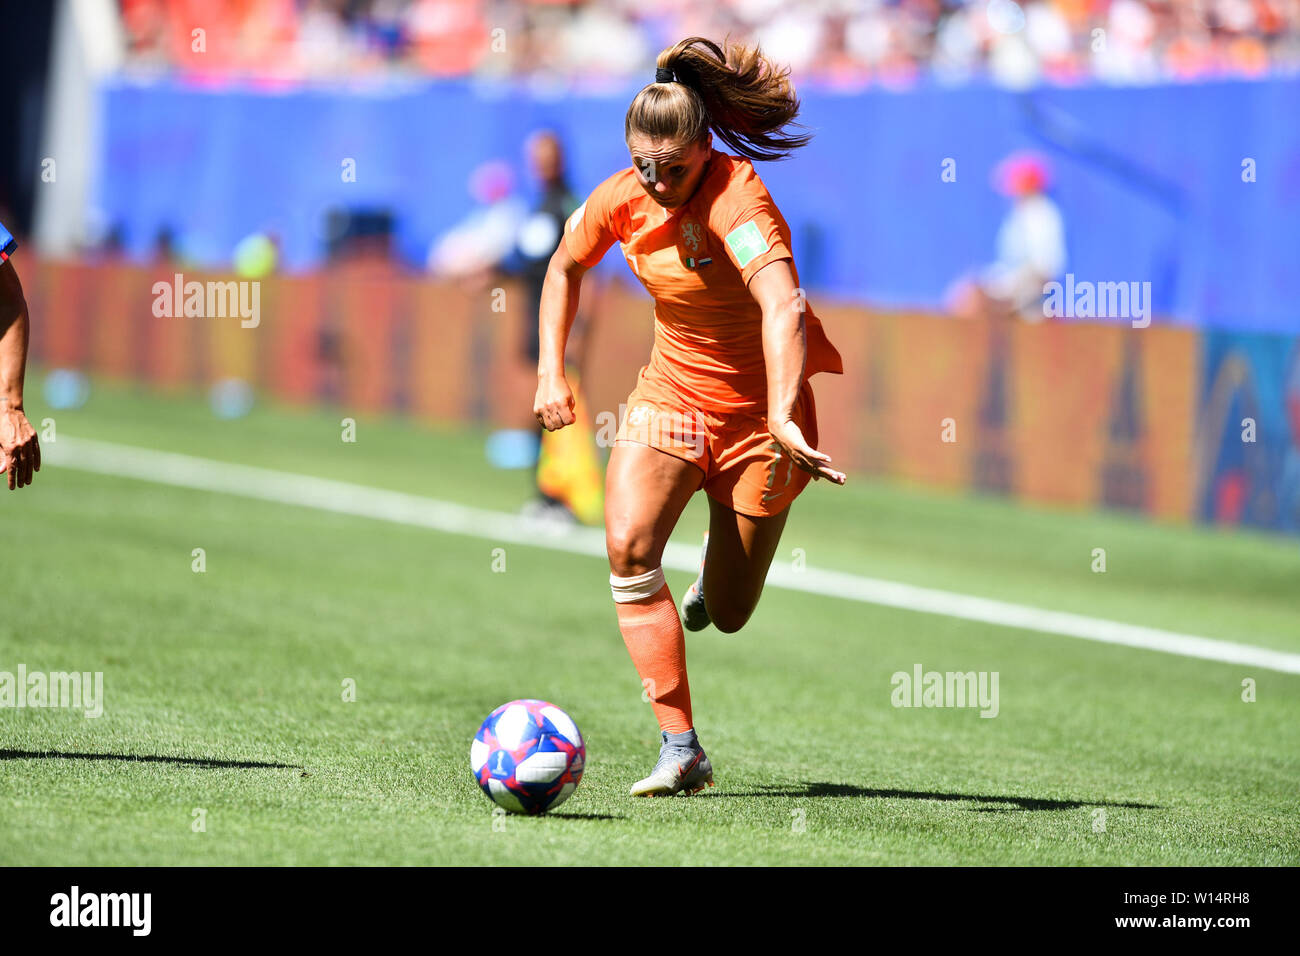 Valenciennes, Frankreich. 29th June, 2019. 29.06.2019, Valenciennes (France), Football, FIFA Women's World Cup 2019, Quarterfinals Italy - Netherlands, FIFA REGULATIONS PROHIBIT ANY USE OF PHOTOGRAPHS AS IMAGE SEQUENCES AND/OR QUASI VIDEO, | usage worldwide Credit: dpa/Alamy Live News Stock Photo